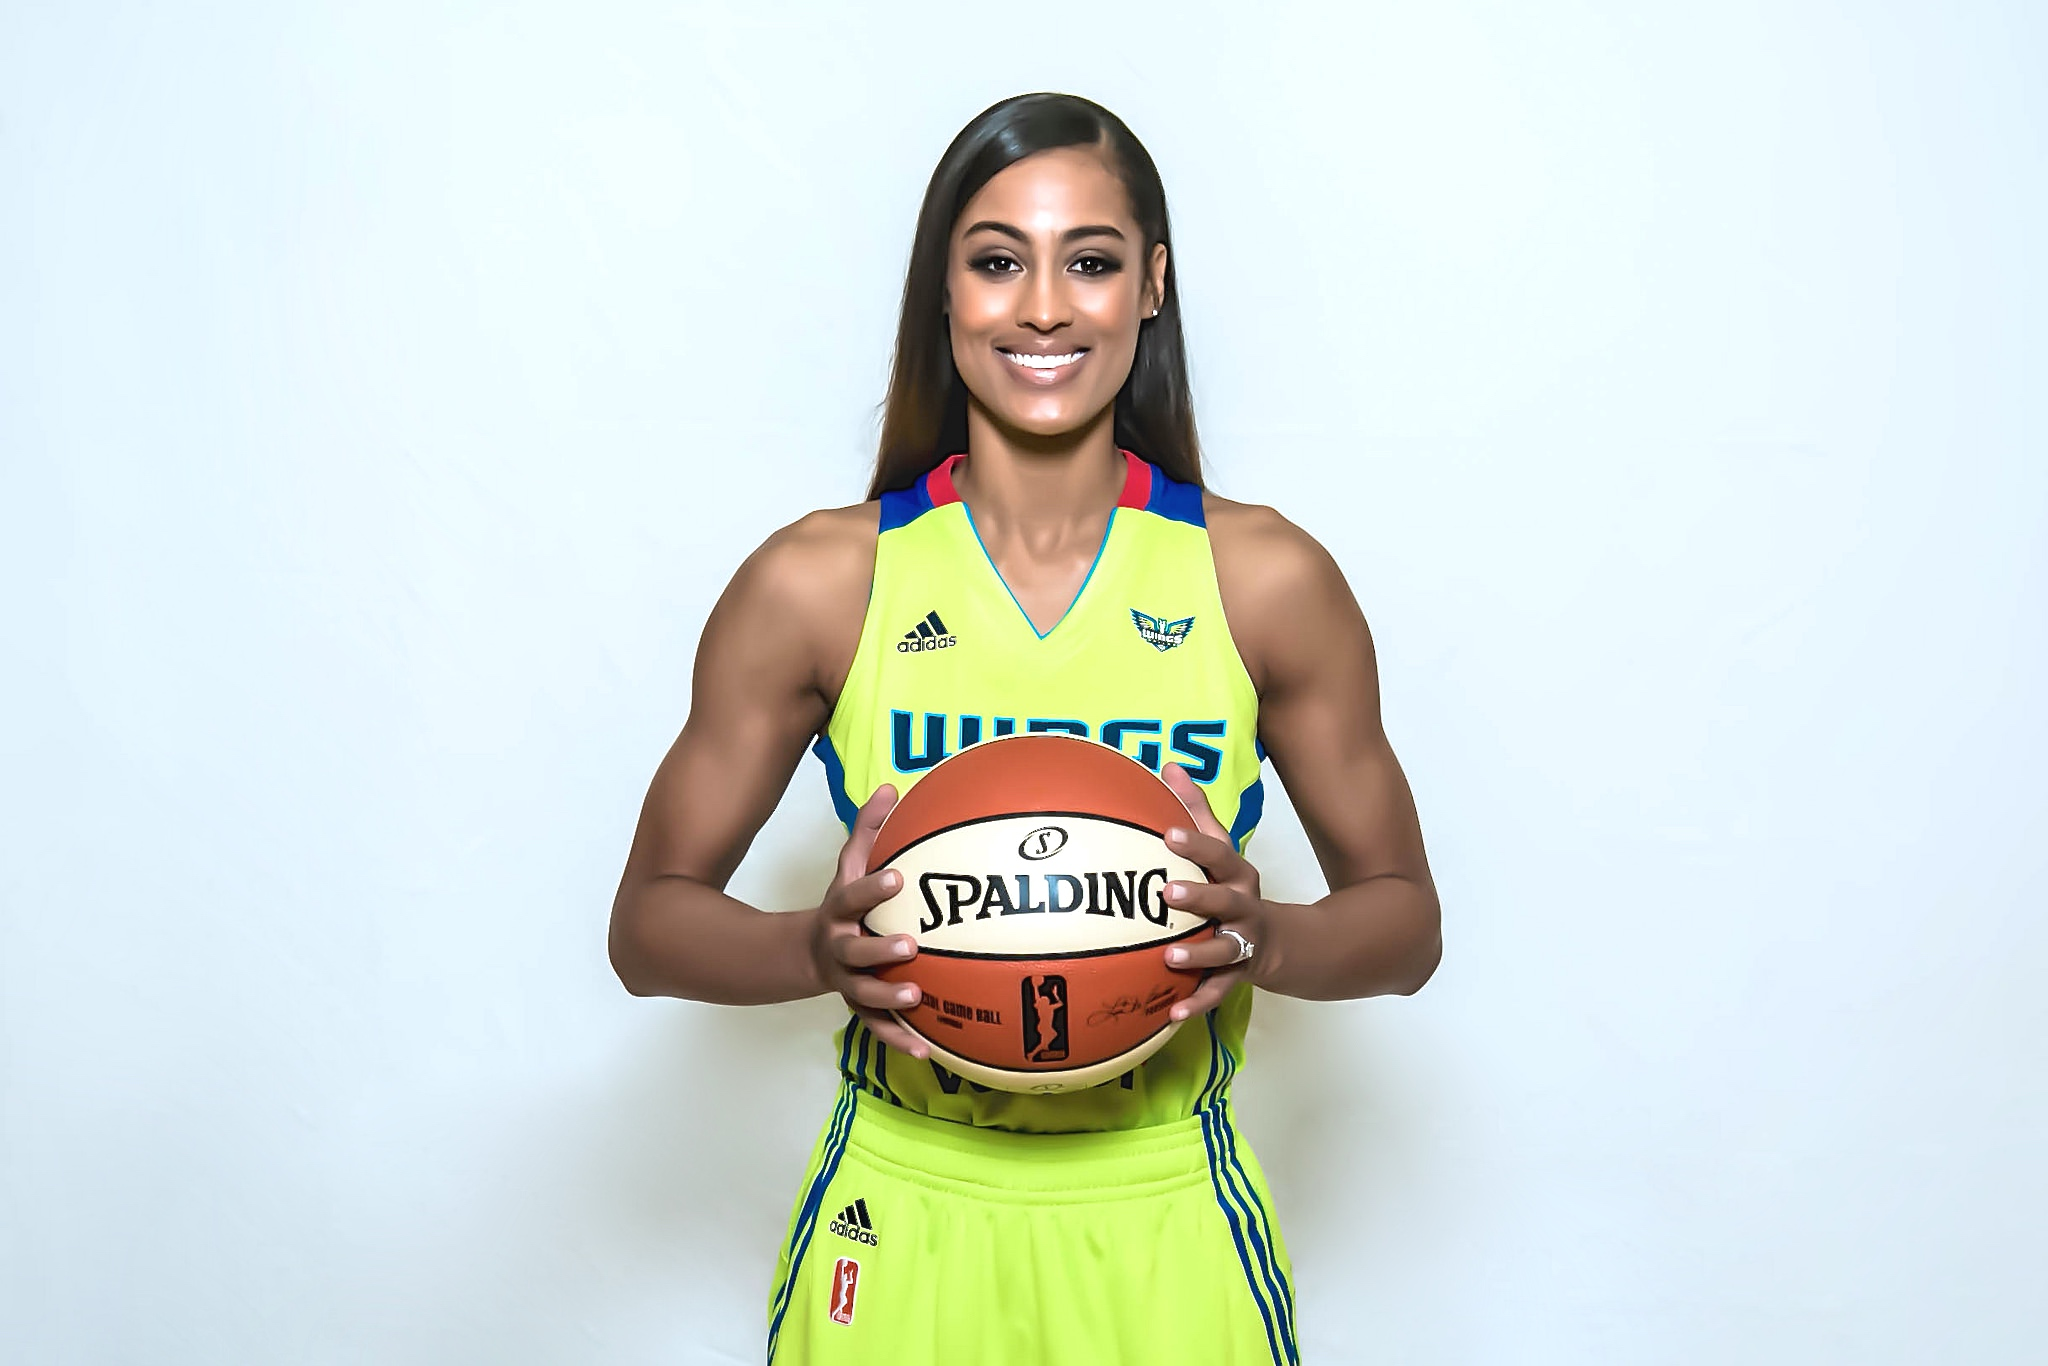 diggins chatrooms Explore tee rochon's board skylar diggins on pinterest | see more ideas about skylar diggins, girls basketball and women's basketball.